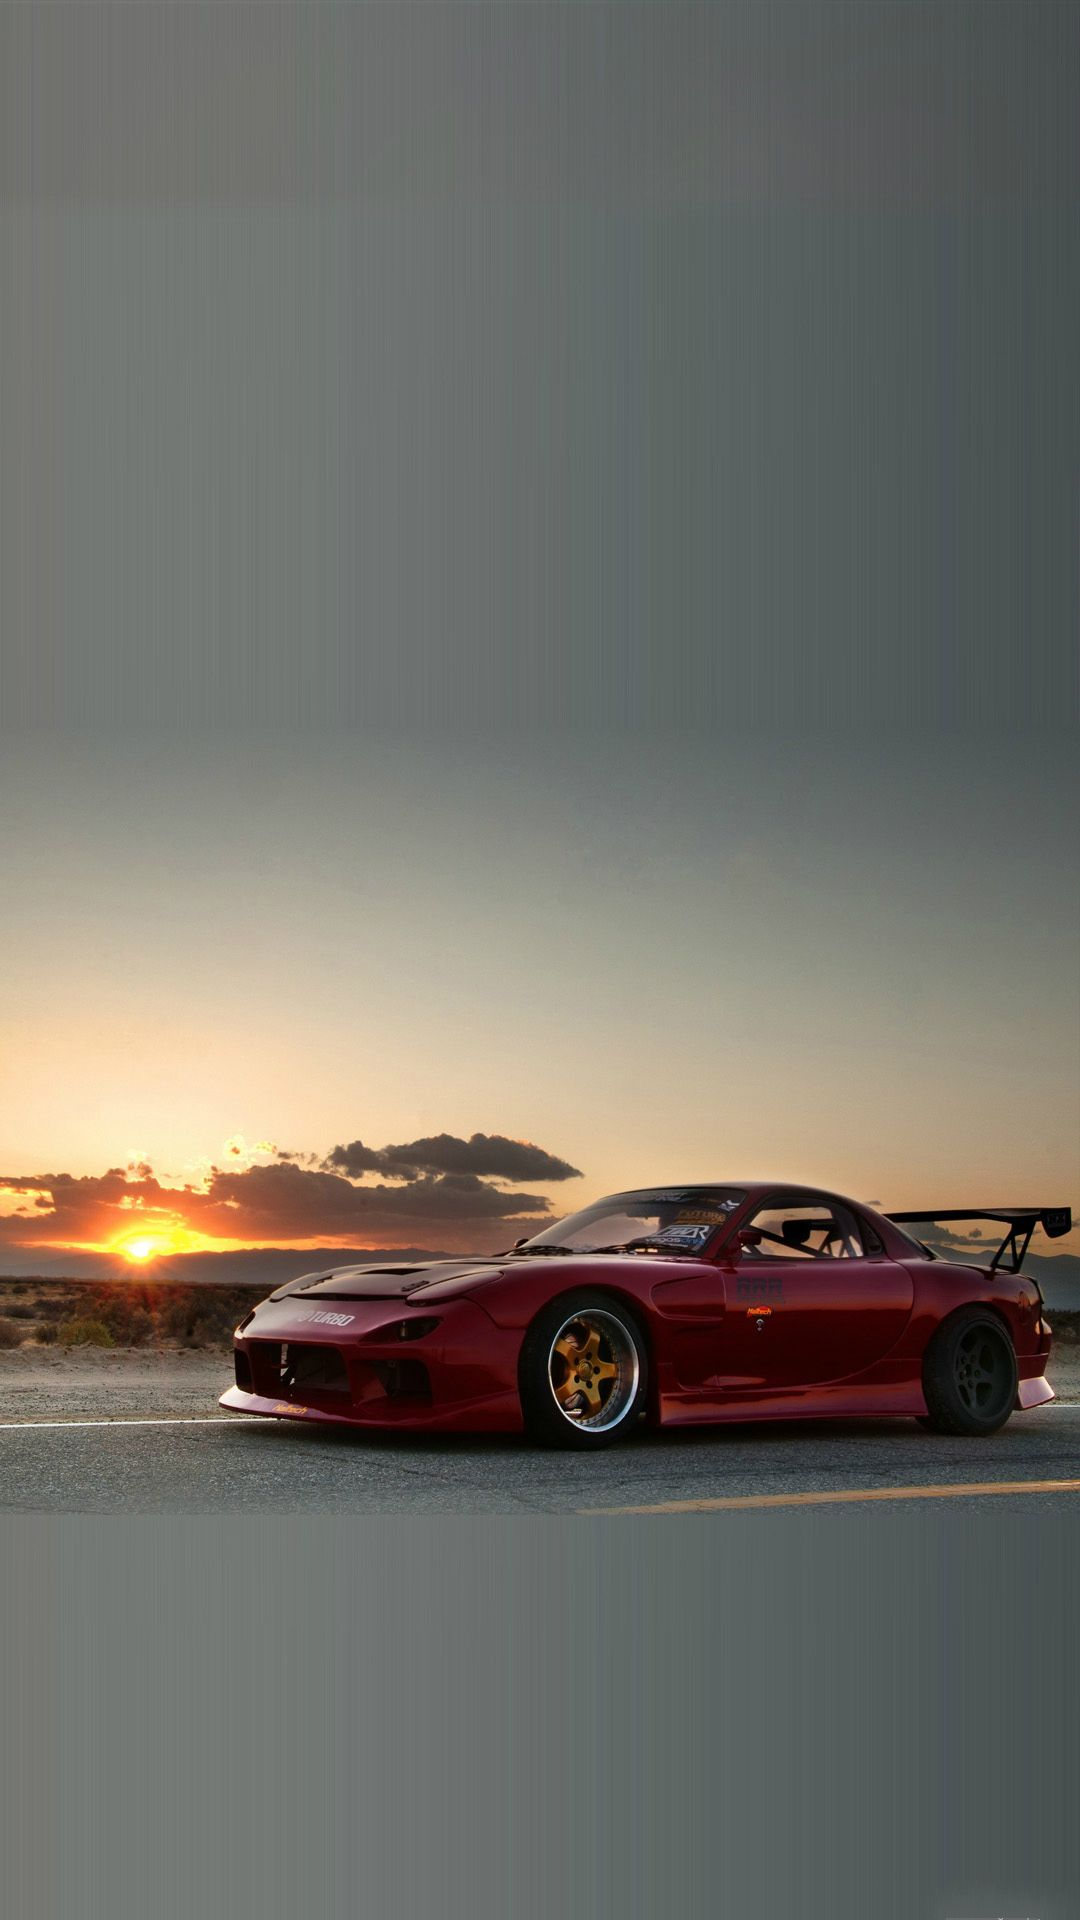 Mazda RX7 Sunset iPhone 8 Wallpapers Mazda rx7, Jdm